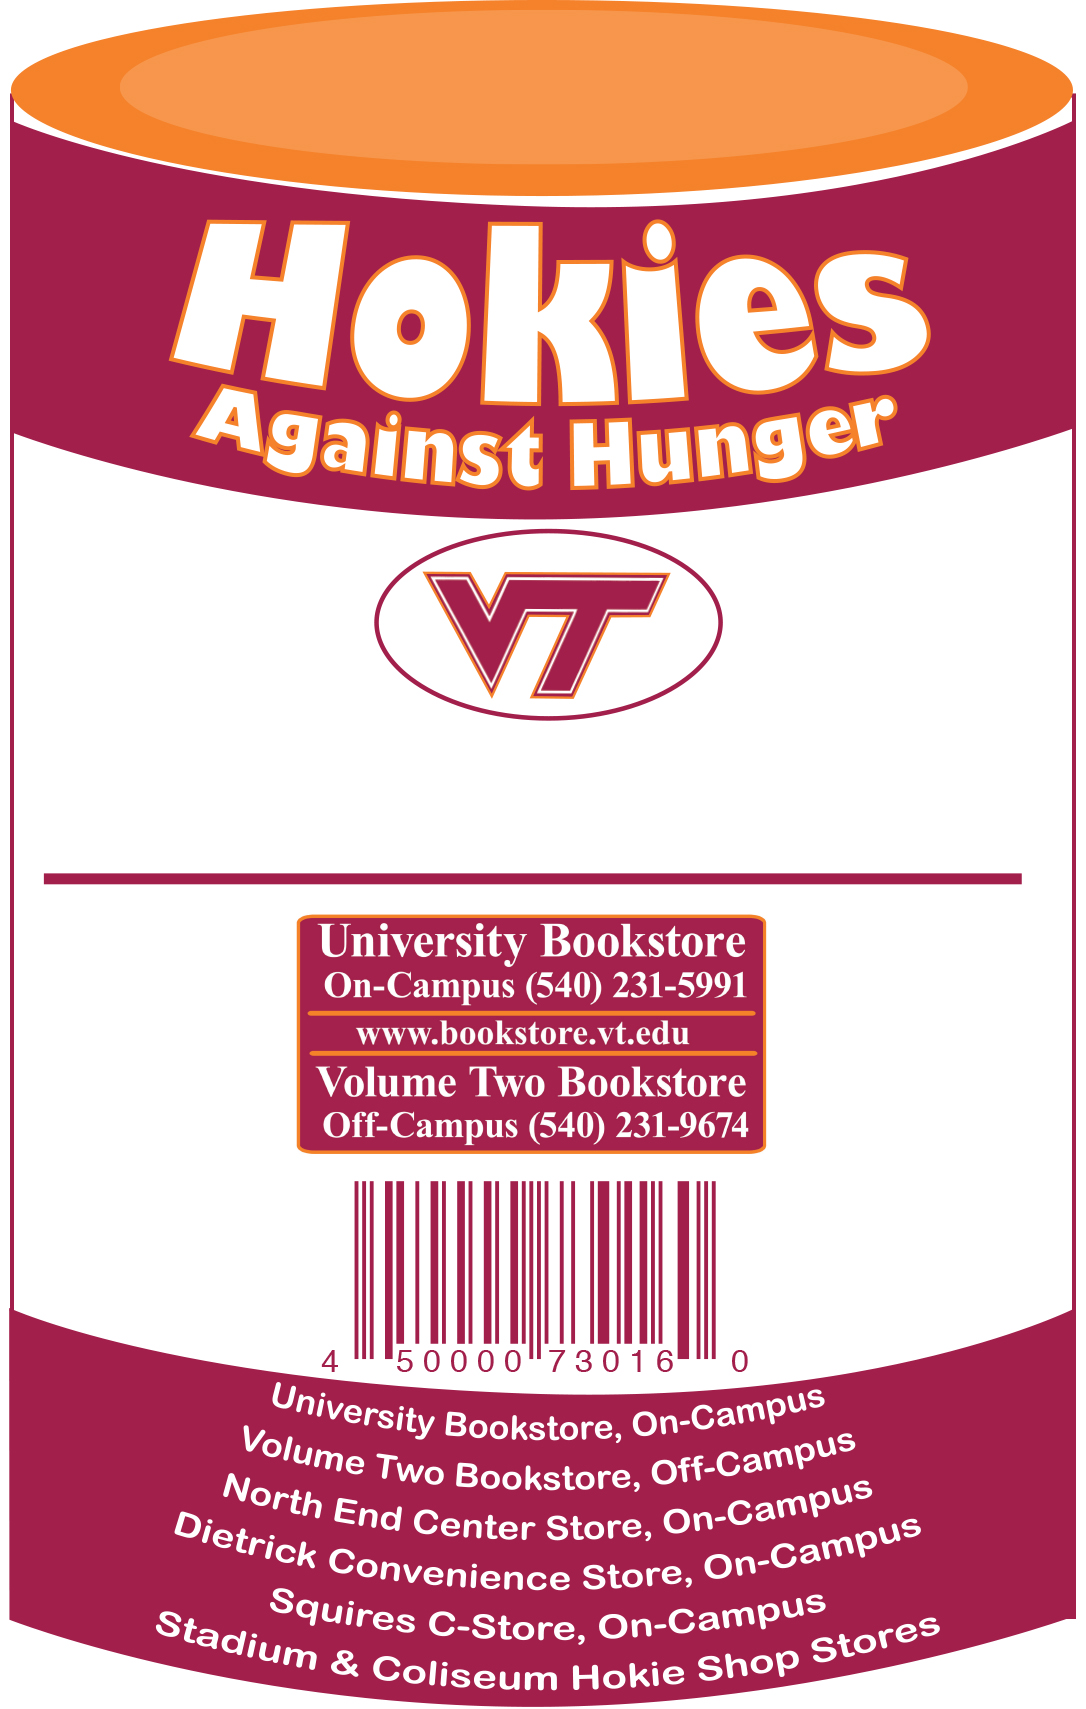 Hokies against Hunger